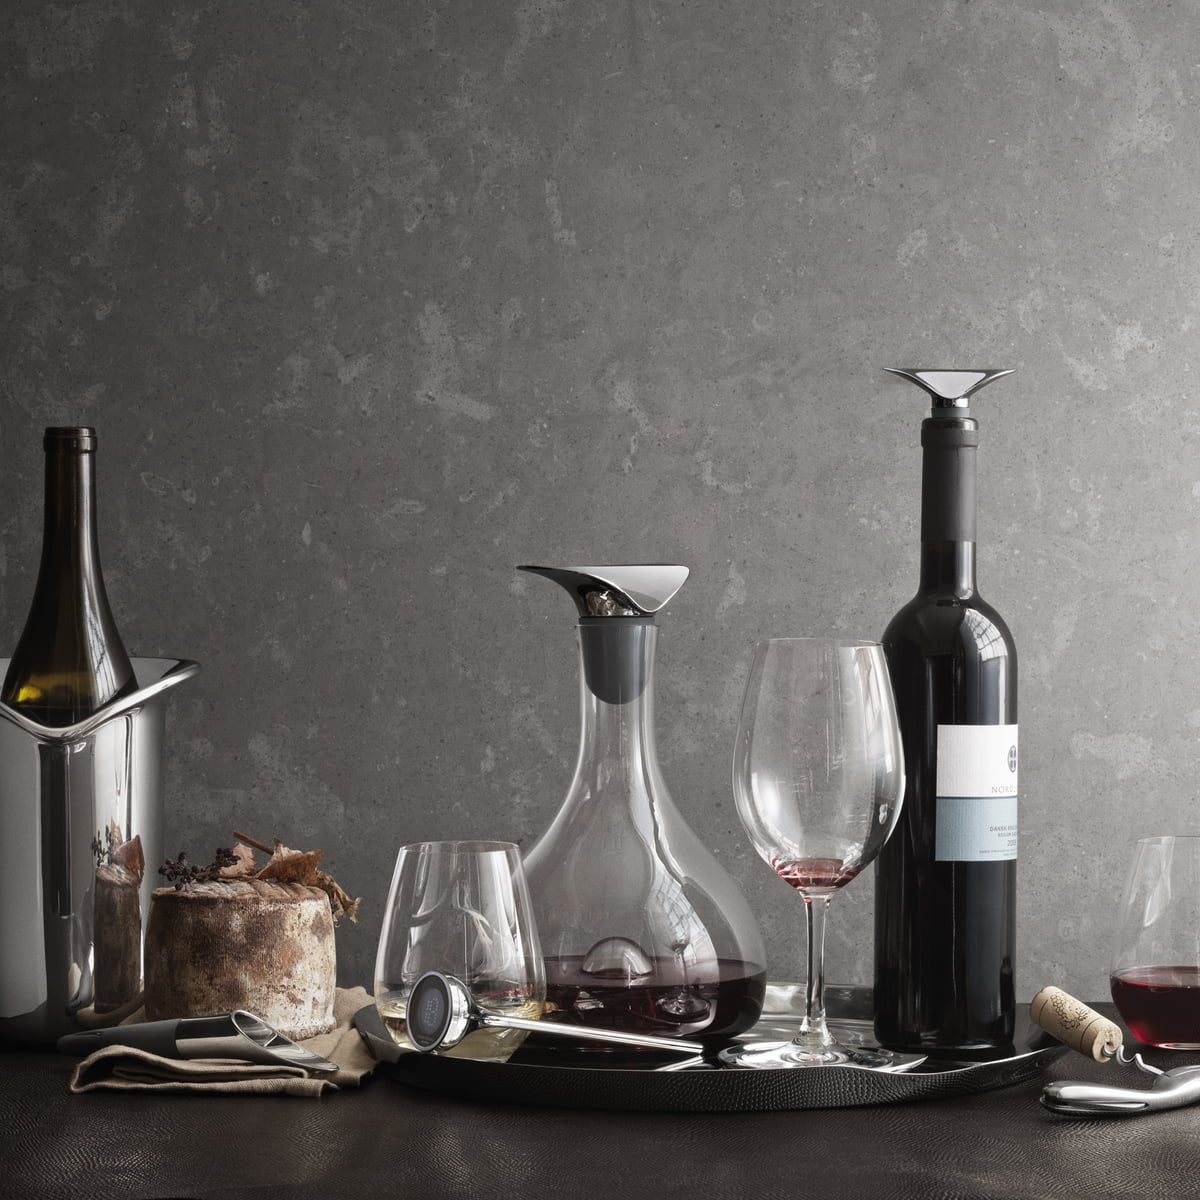 Georg Jensen S London Boutique By Studio David Thulstrup: The Wine Decanter By Georg Jensen In The Shop